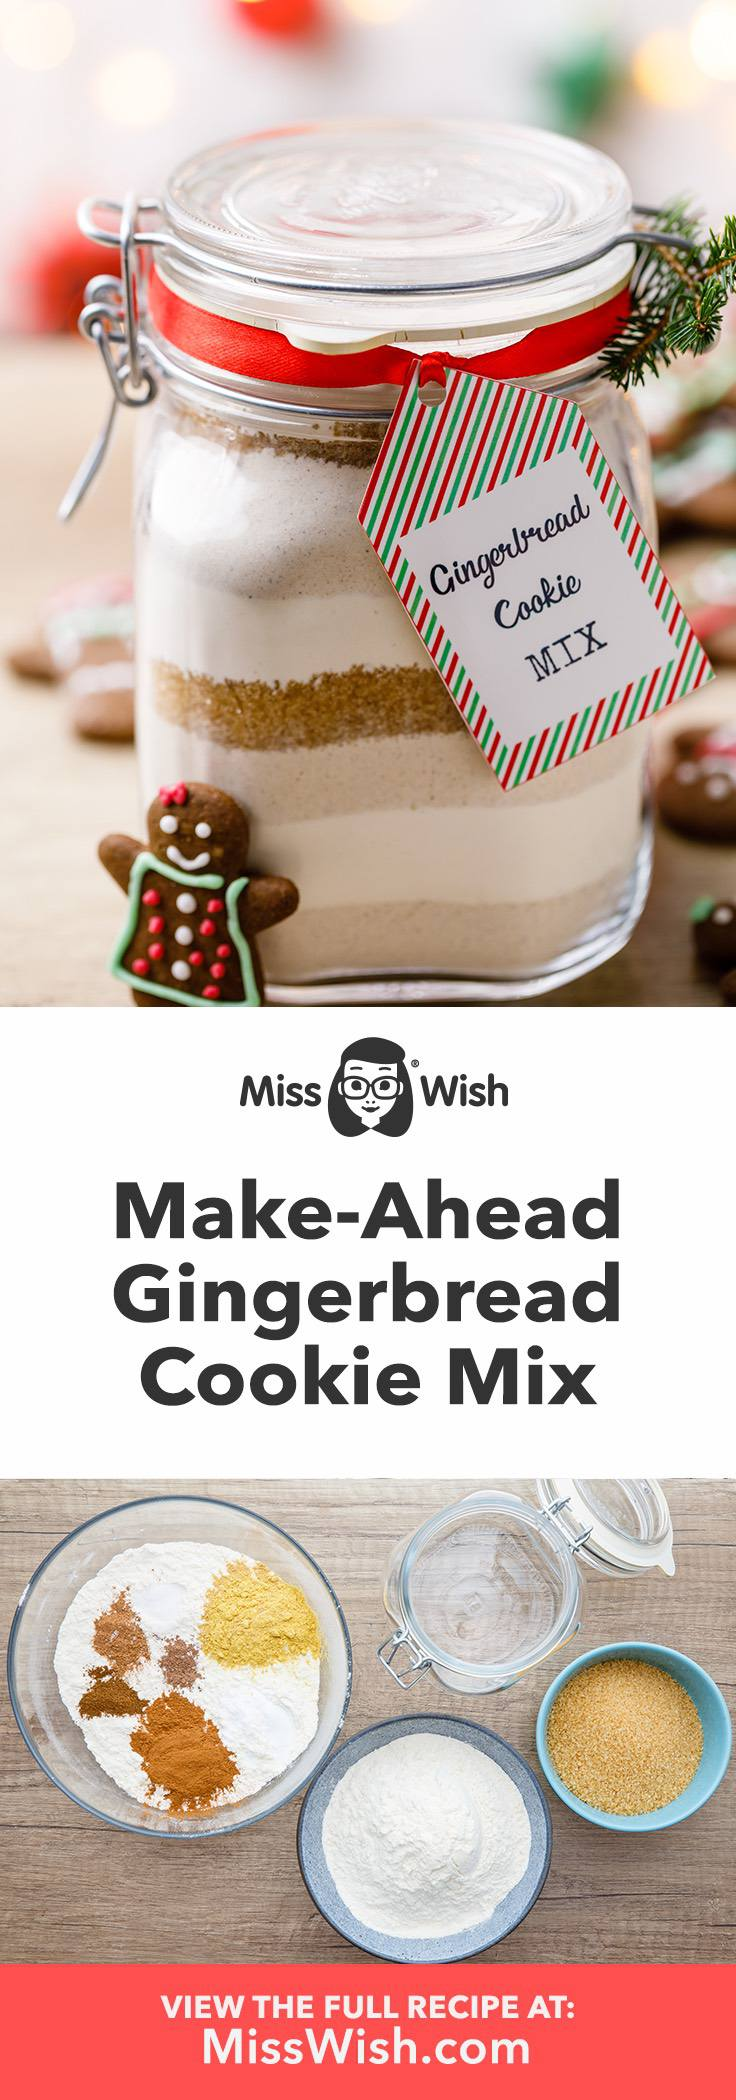 How to Make Gingerbread Cookie Mix From Scratch - Miss Wish #gingerbreadcookies